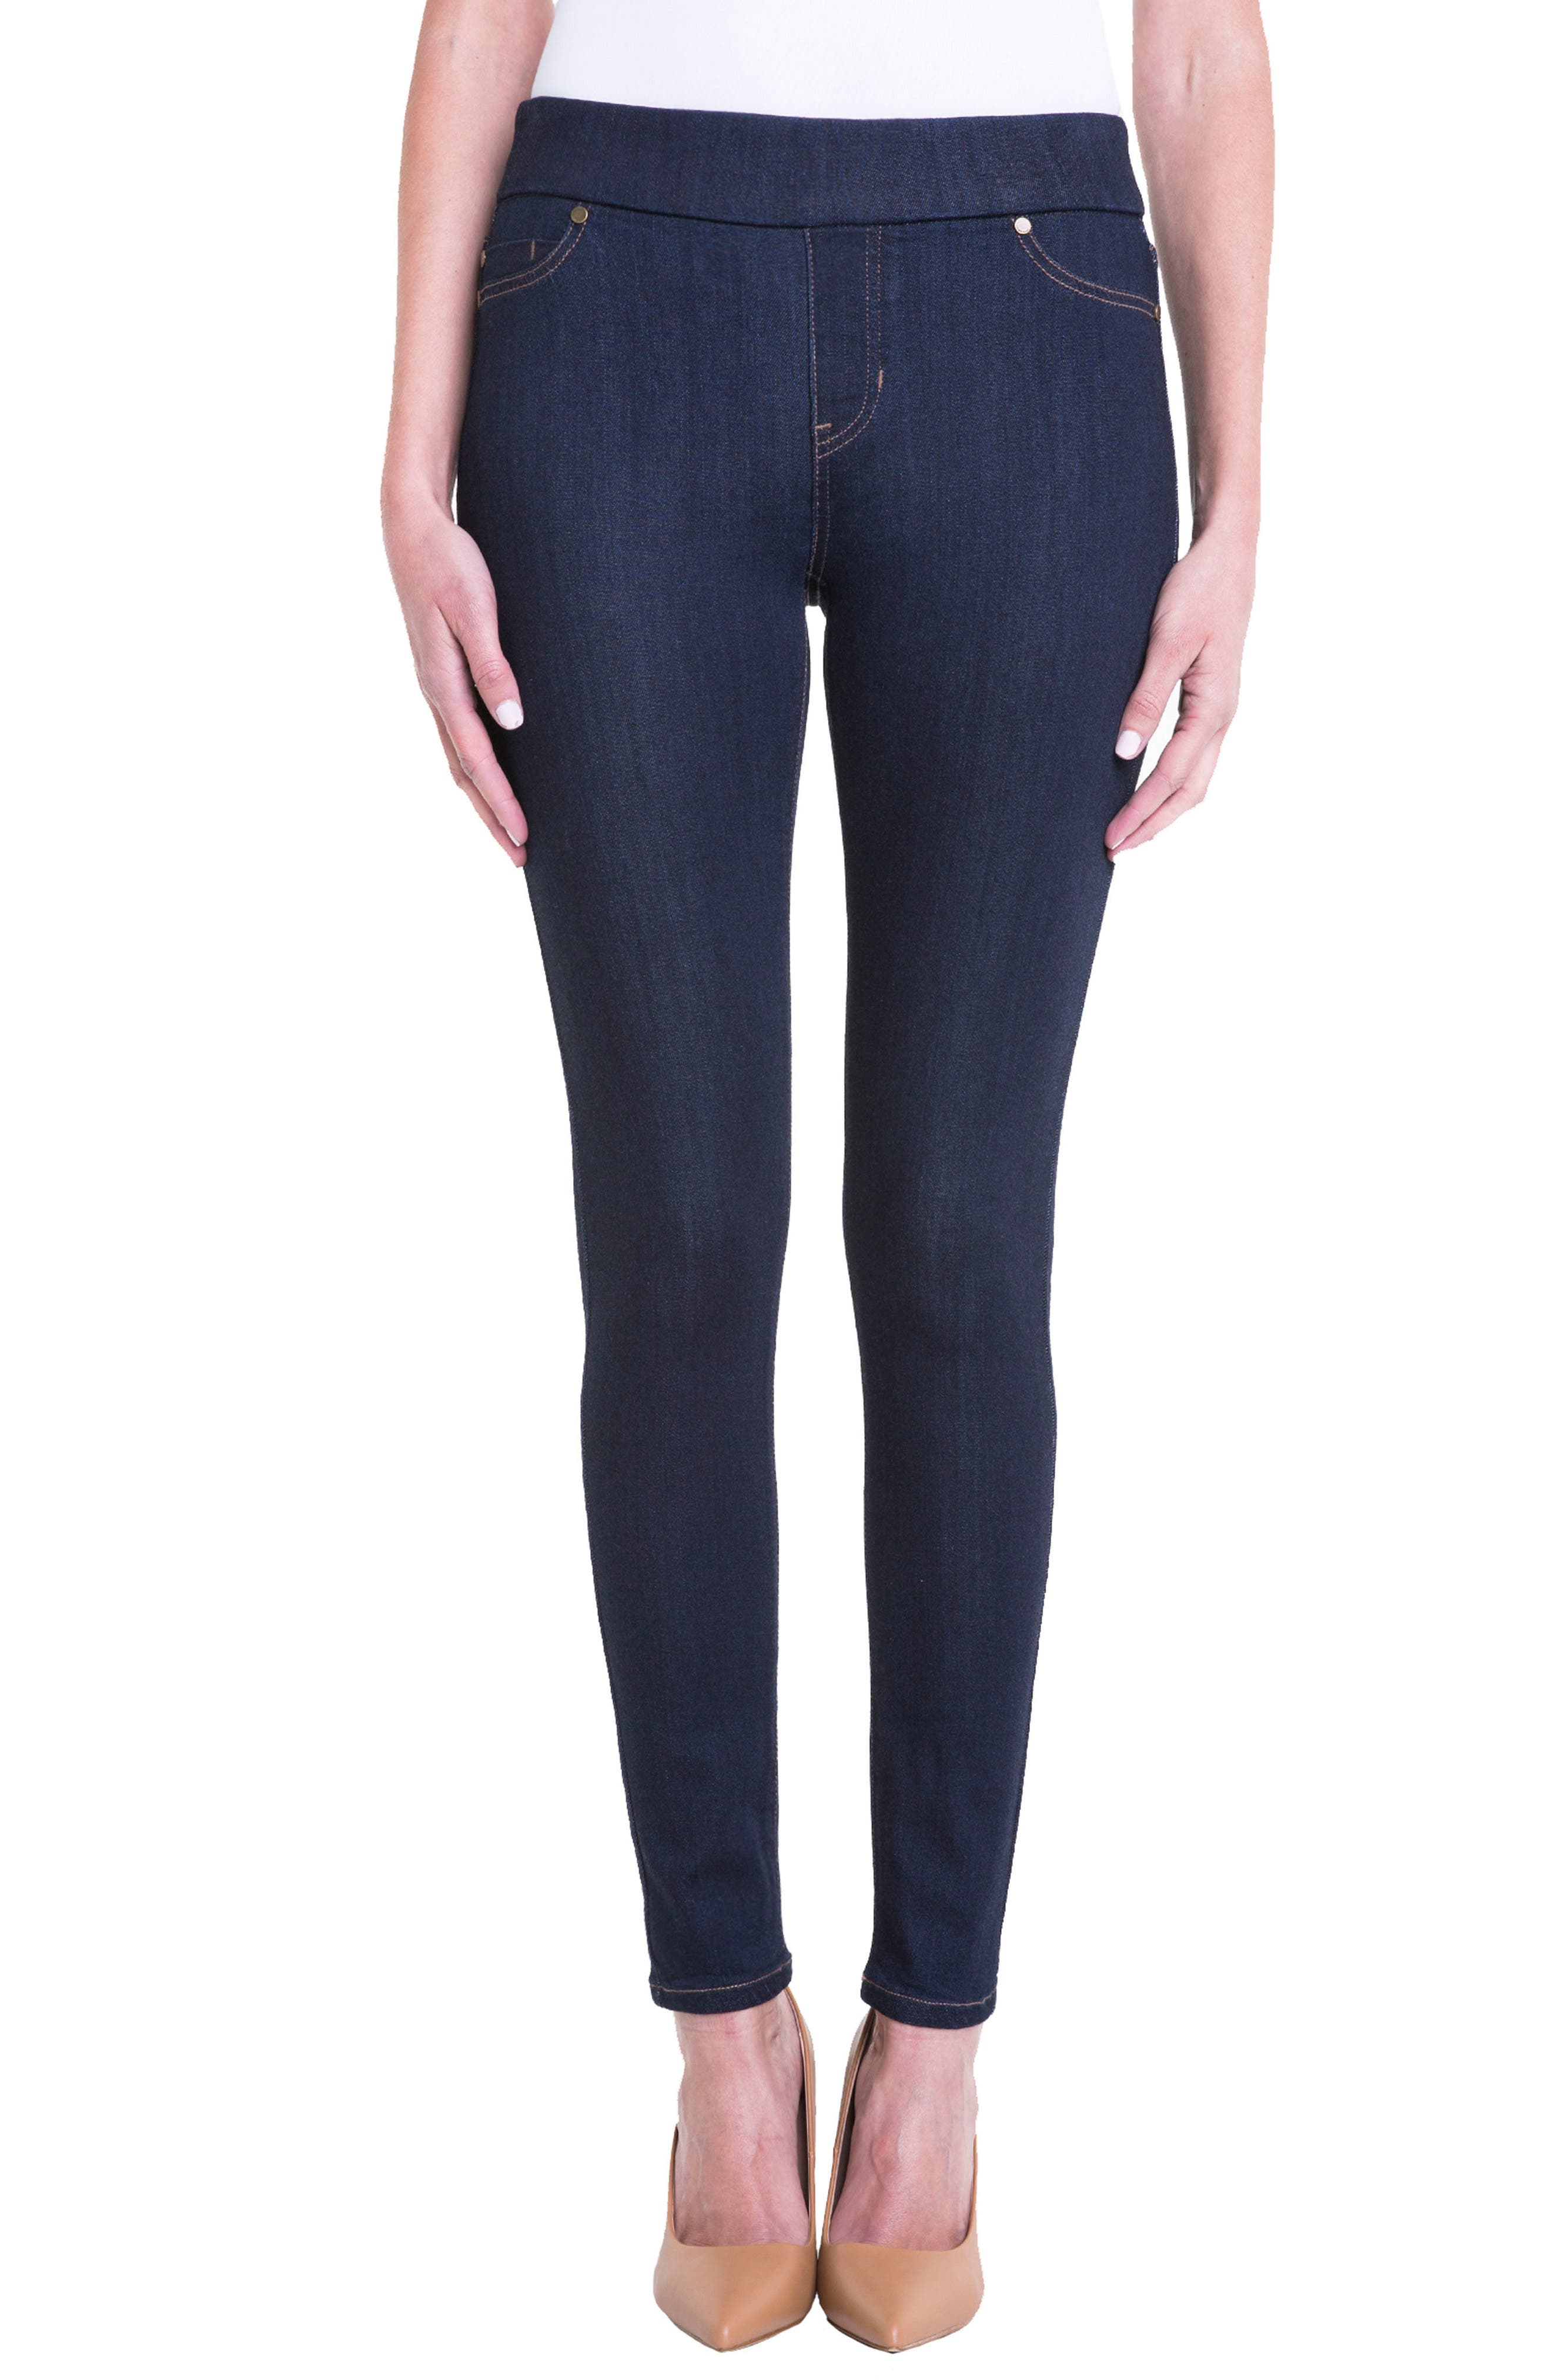 Liverpool Jeans Company Sienna Mid Rise Soft Stretch Denim Leggings  (Indigo)